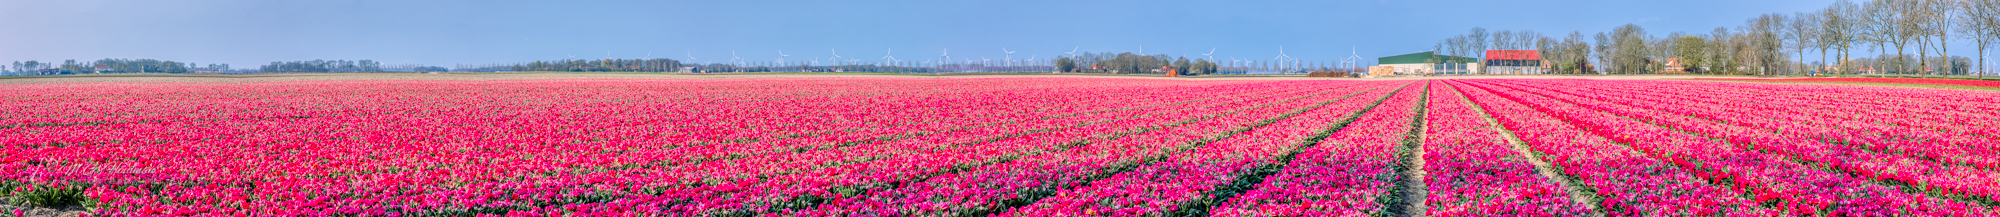 At a Dutch field of red tulips